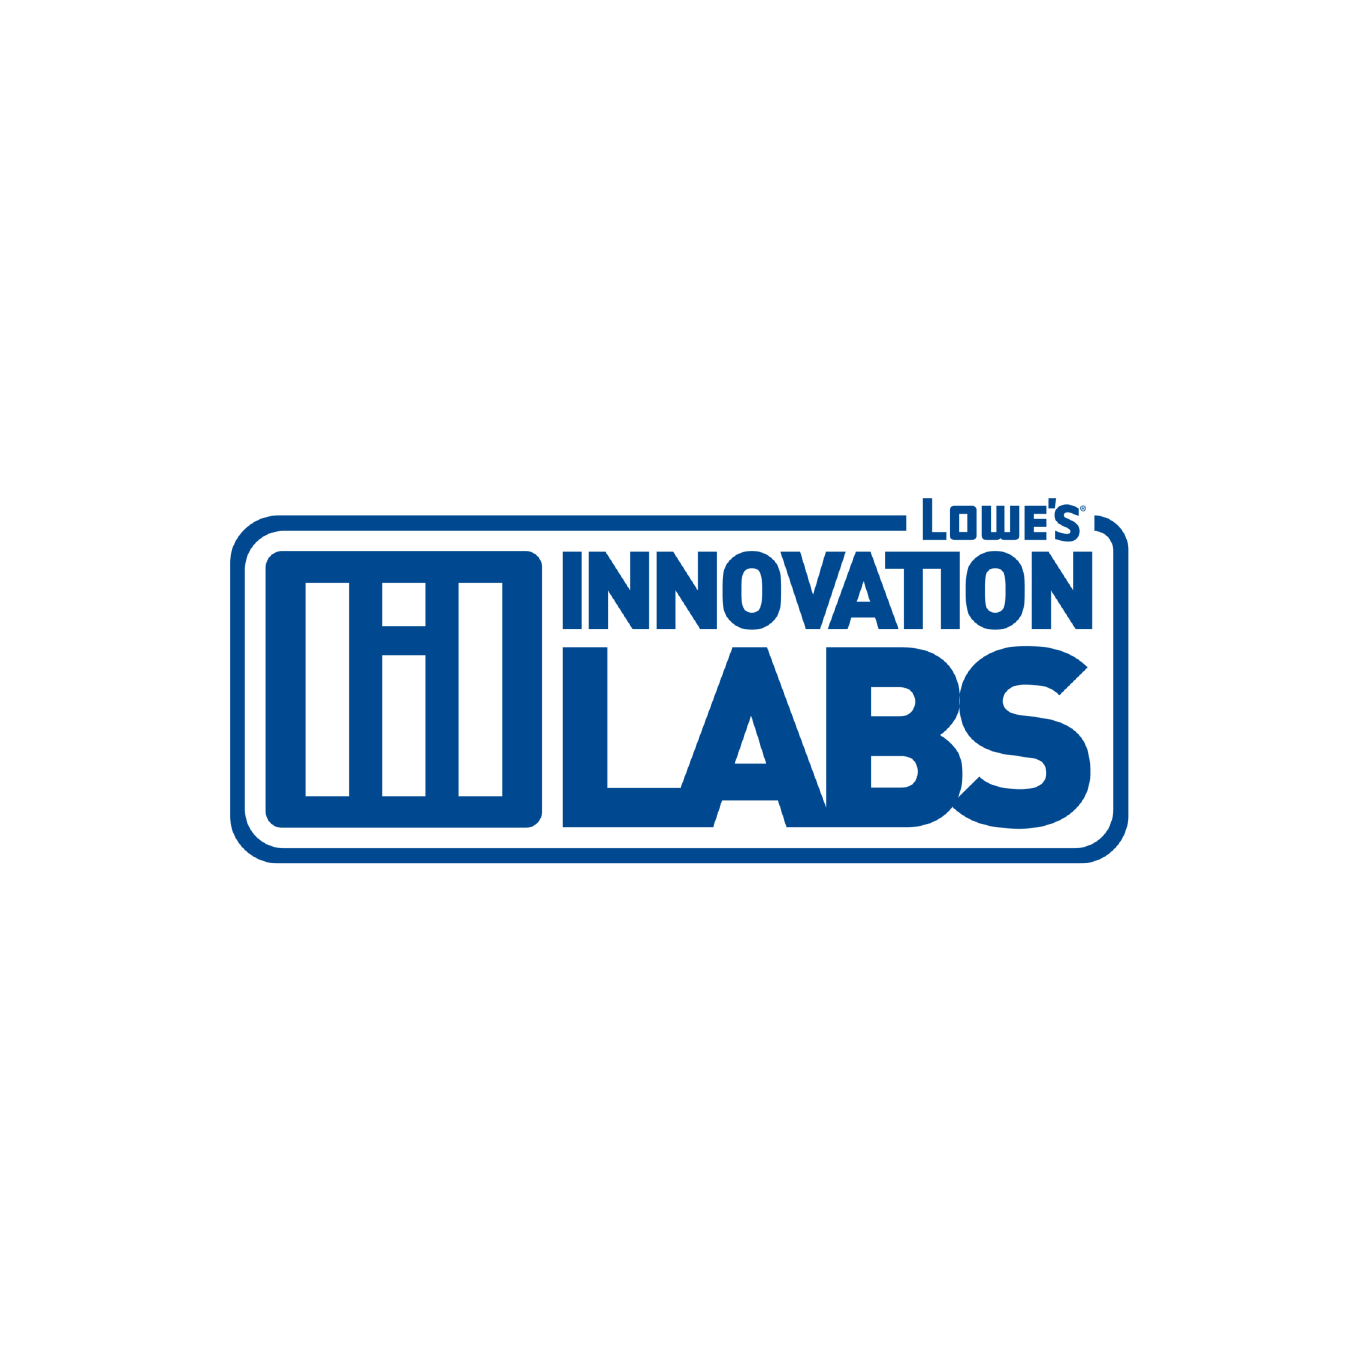 Lowes innovation labs logo